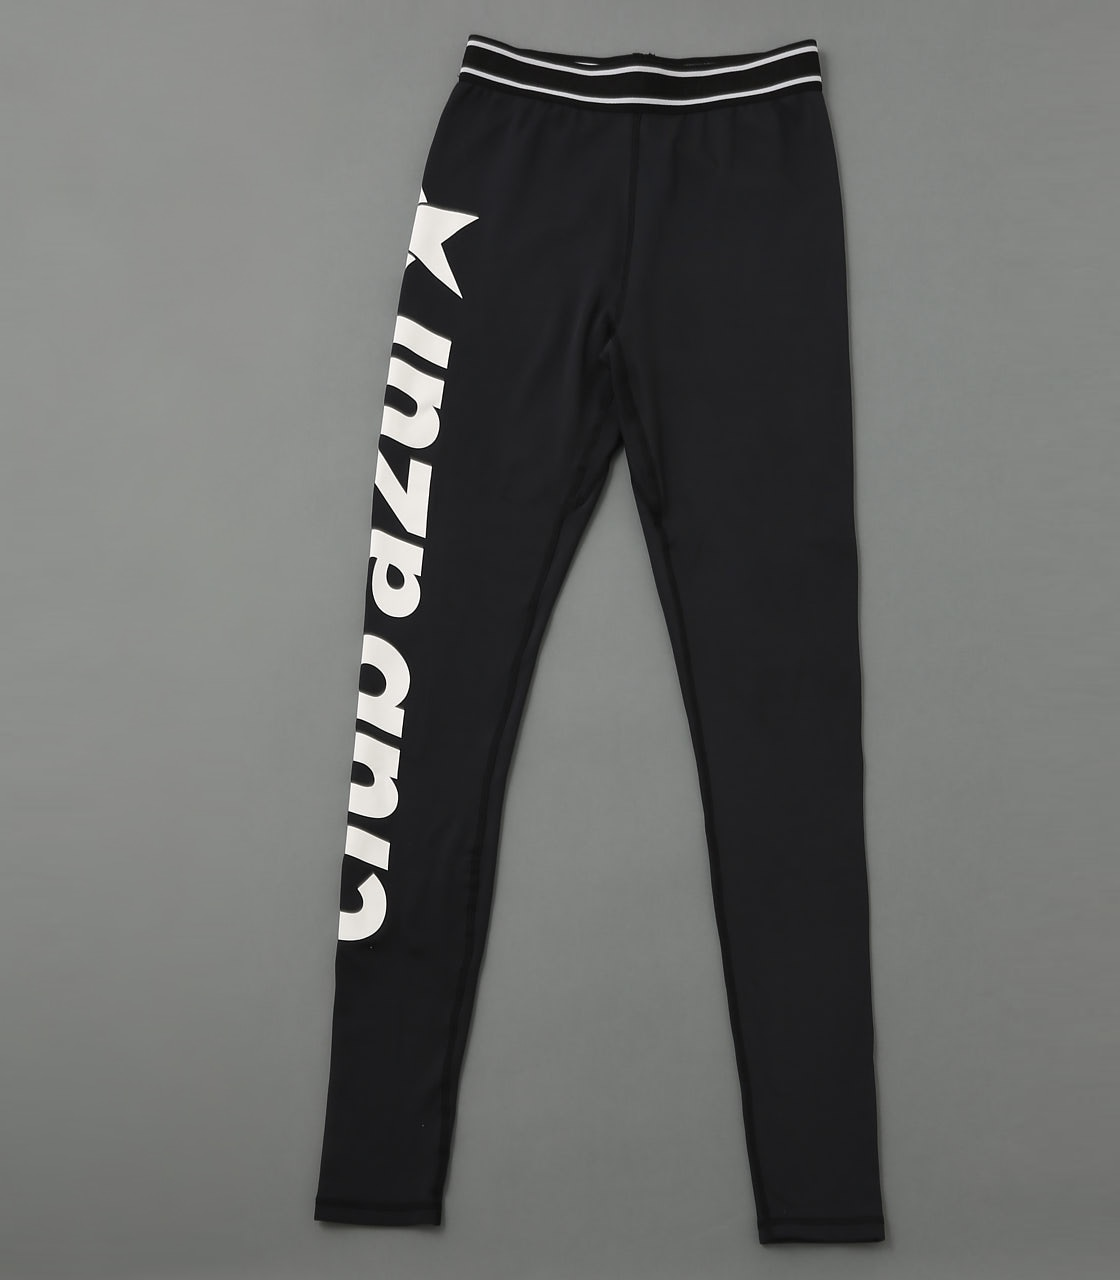 【AZUL BY MOUSSY】CLUB AZUL LOGO LEGGINGS 詳細画像 BLK 4